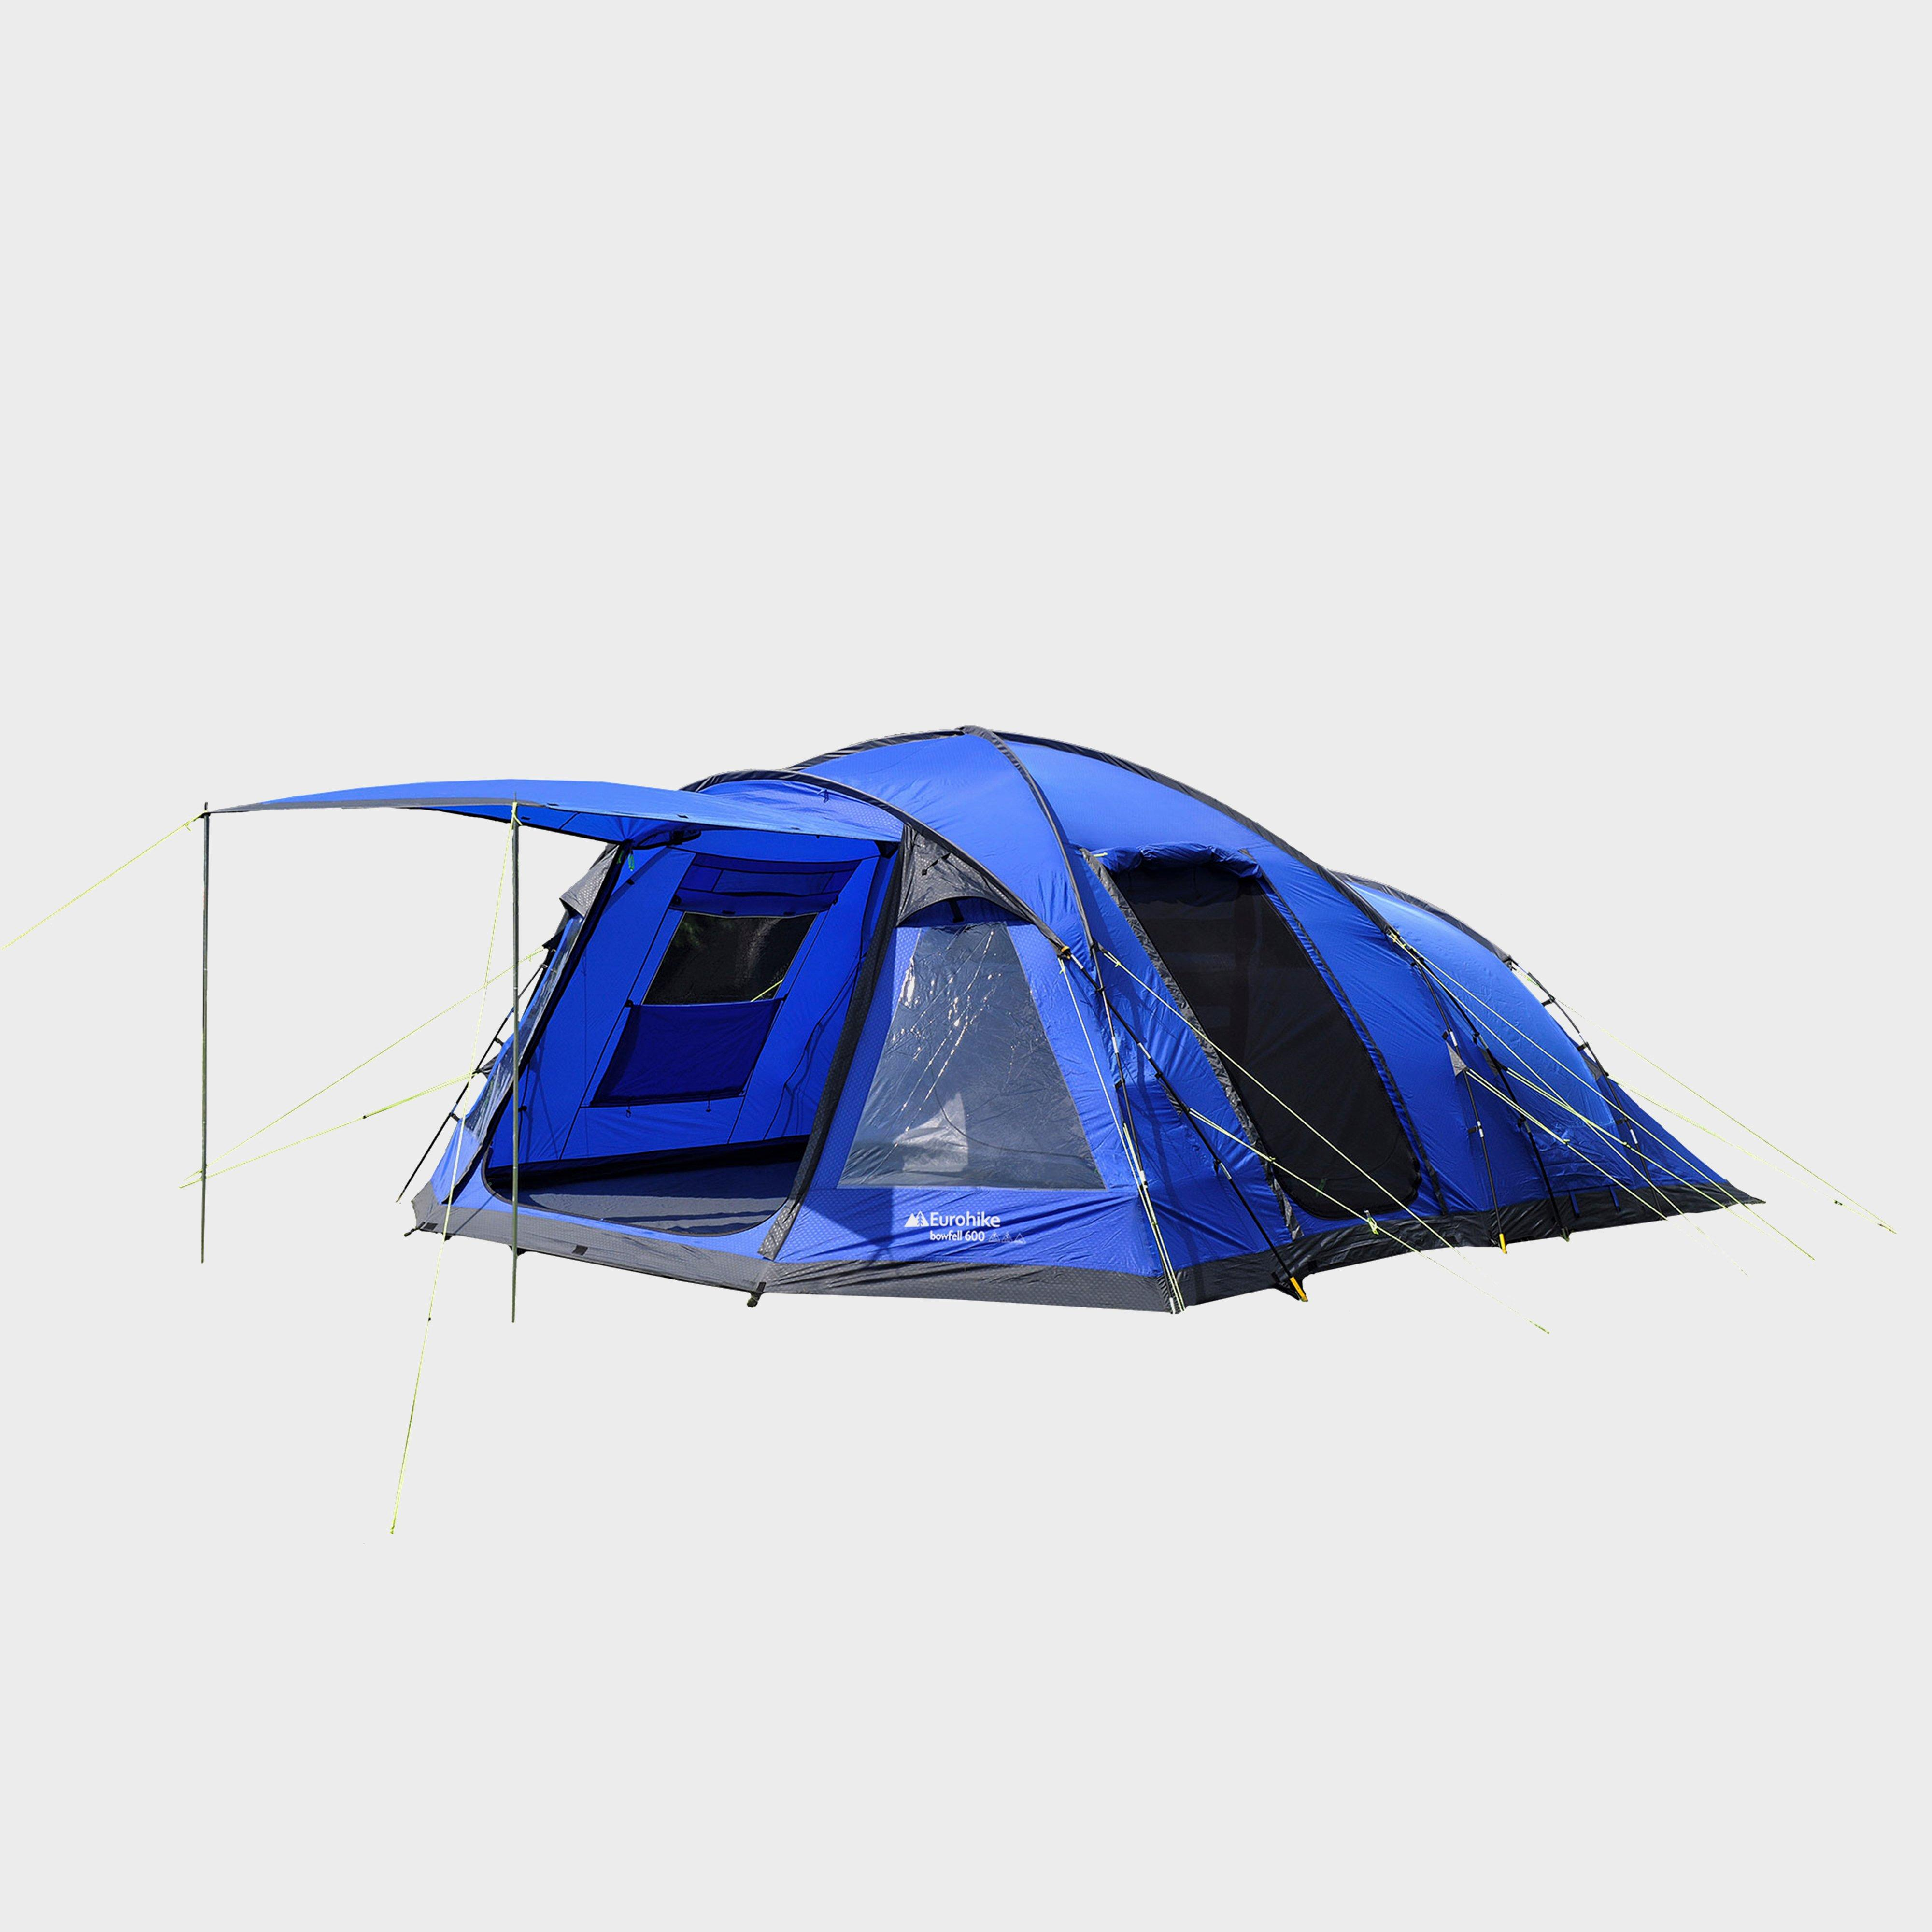 Eurohike Bowfell 600 6 Person Tent Blue